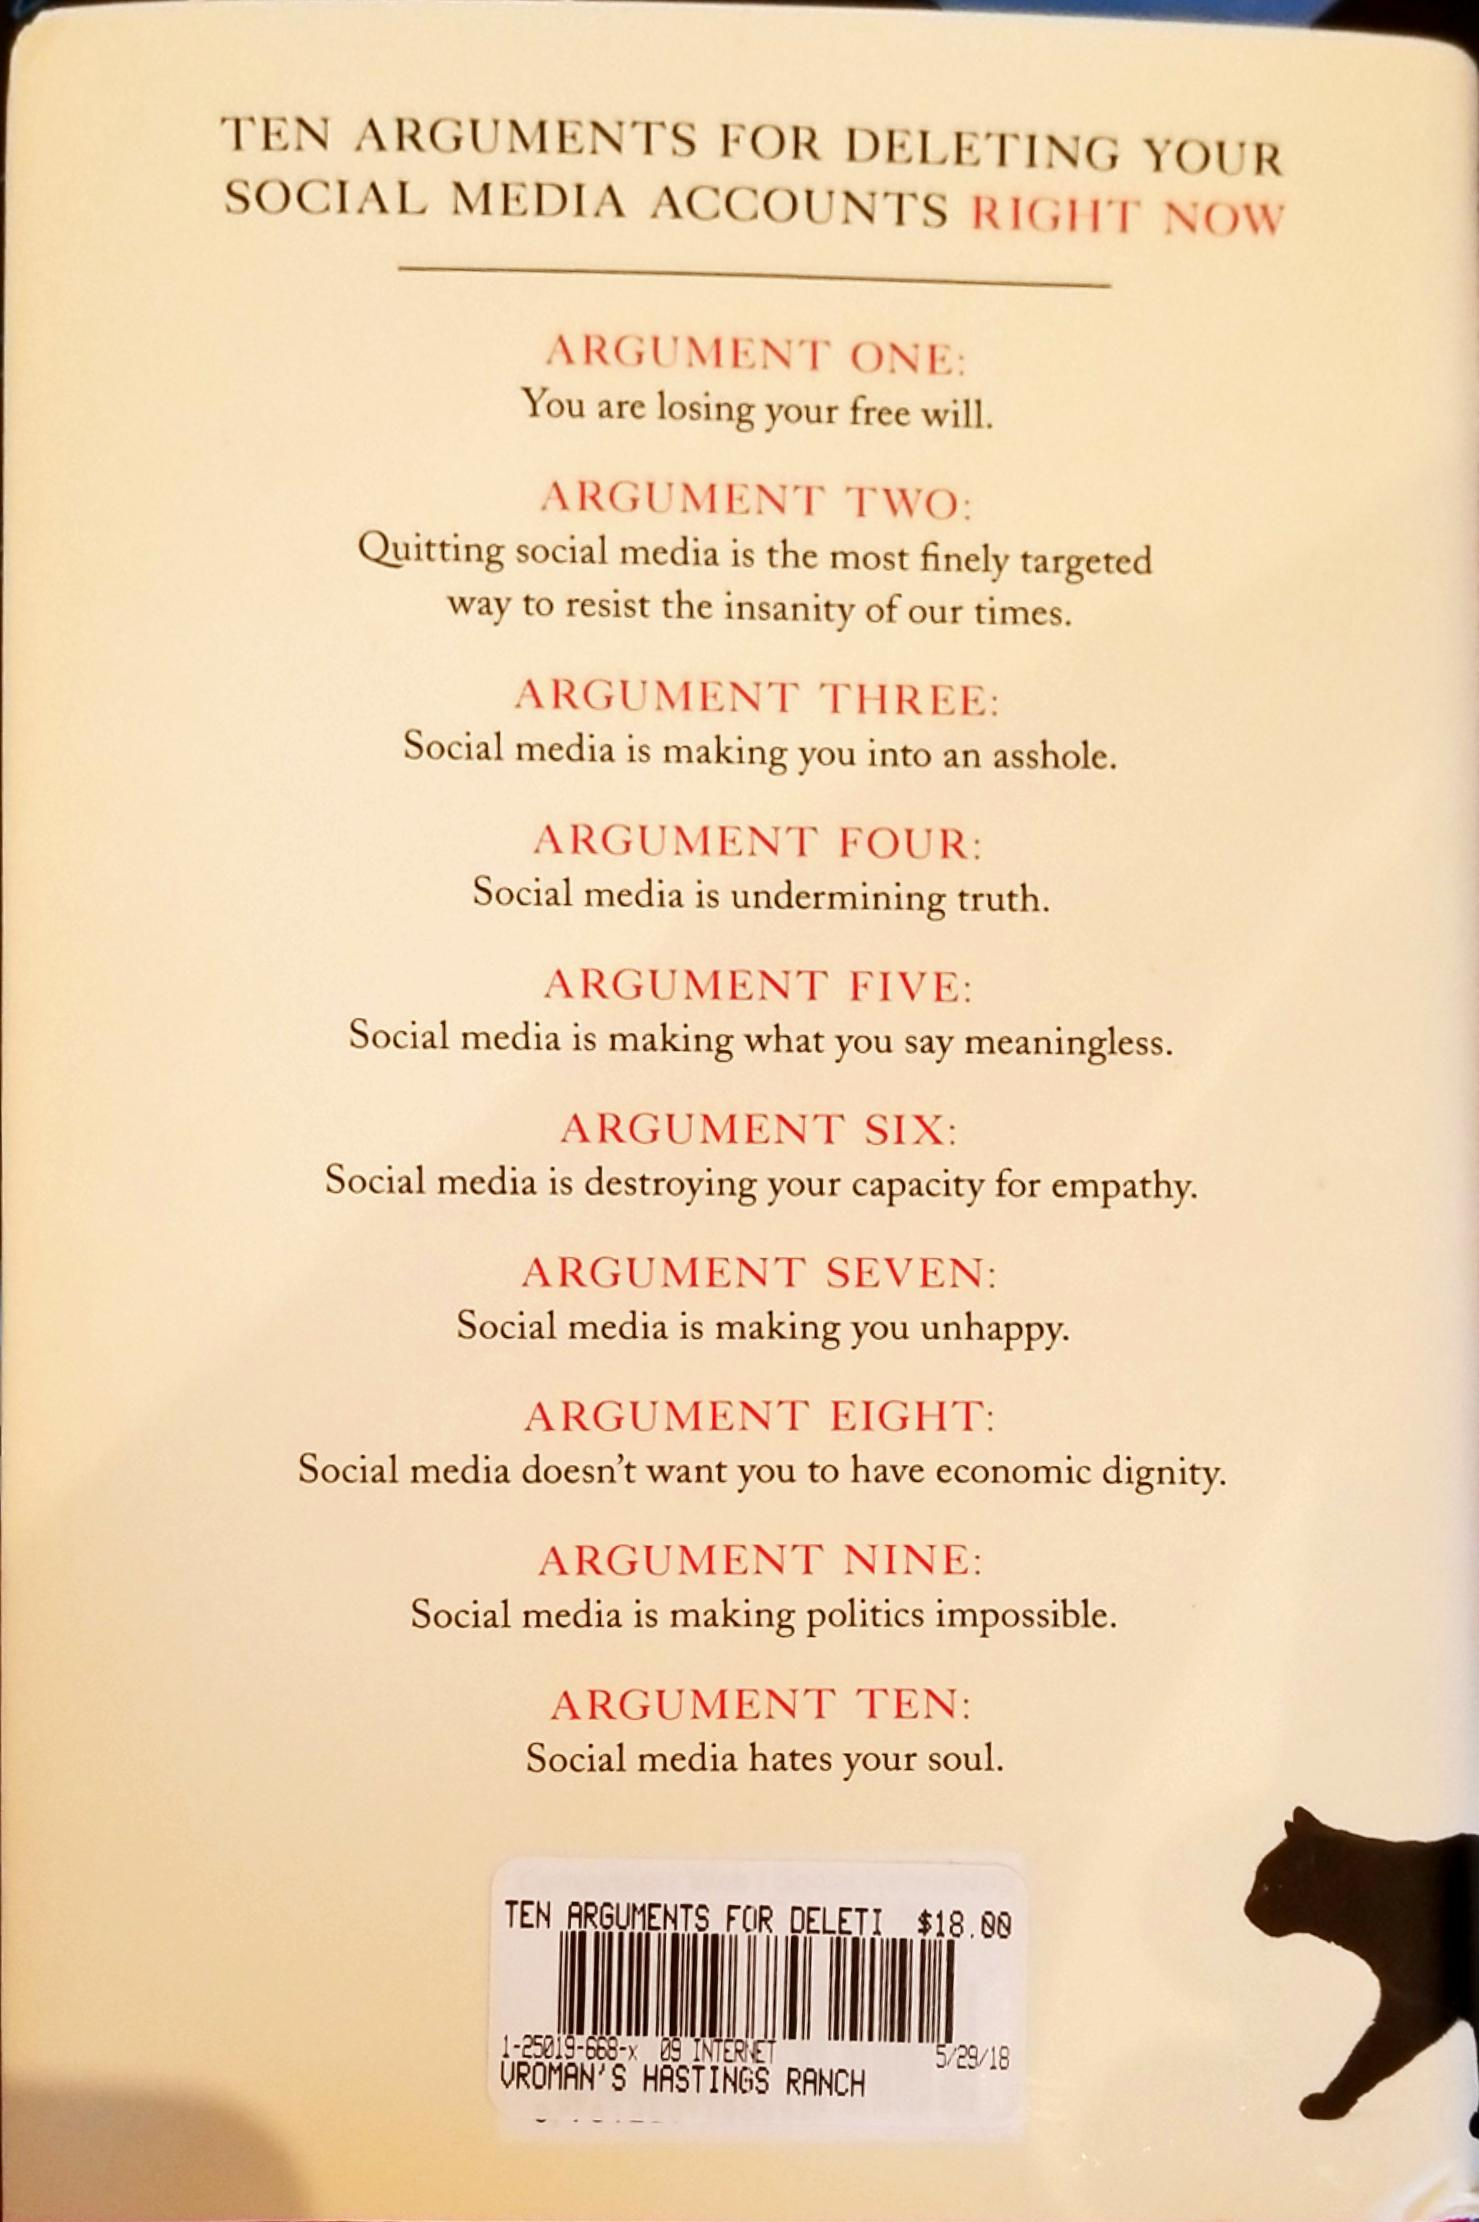 Rear cover with outline of the ten arguments